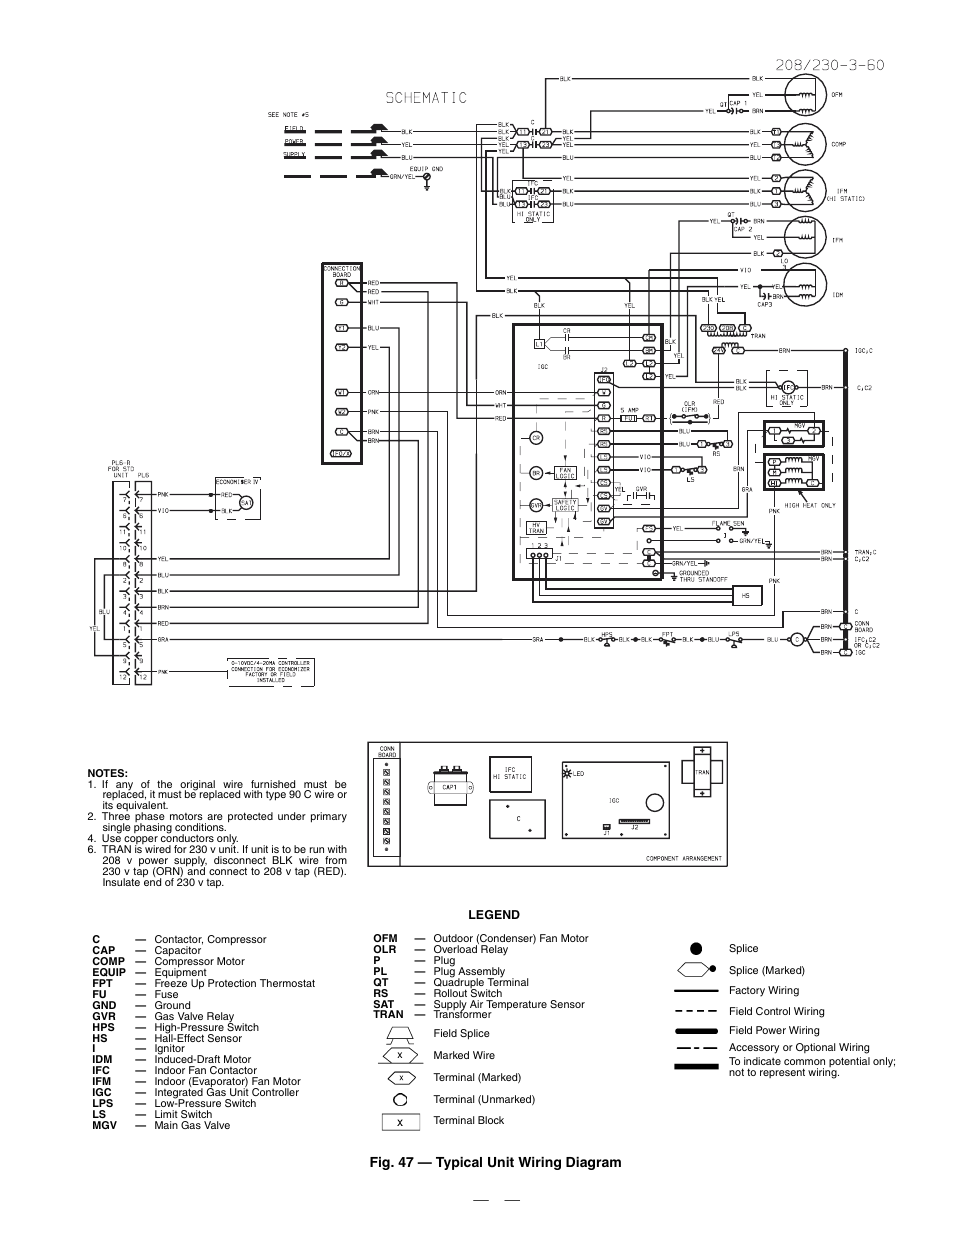 Fig 47 Typical Unit Wiring Diagram Bryant Durapac 580f User Limit Switch Schematic Manual Page 52